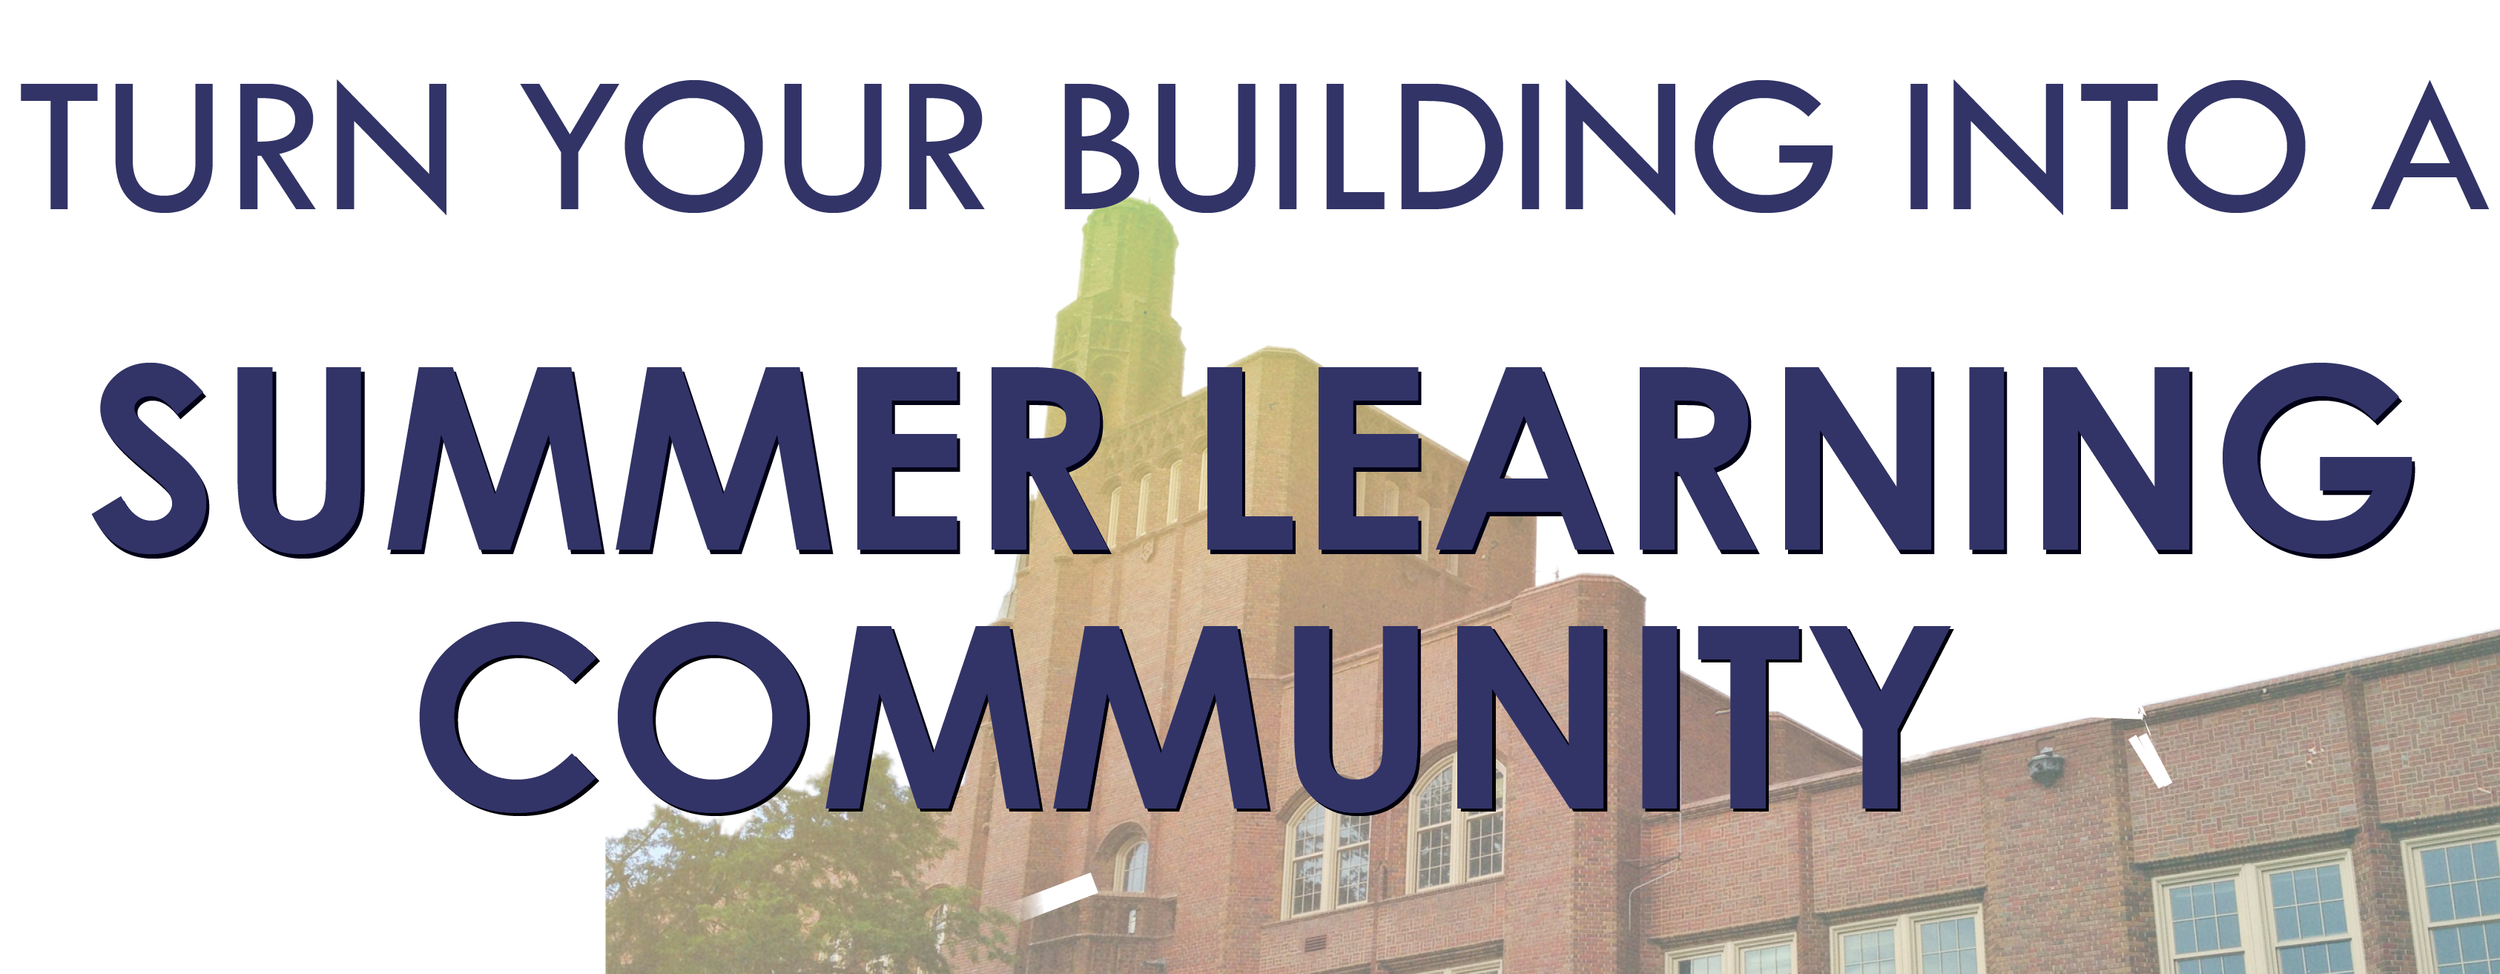 Summer Learning Community.png